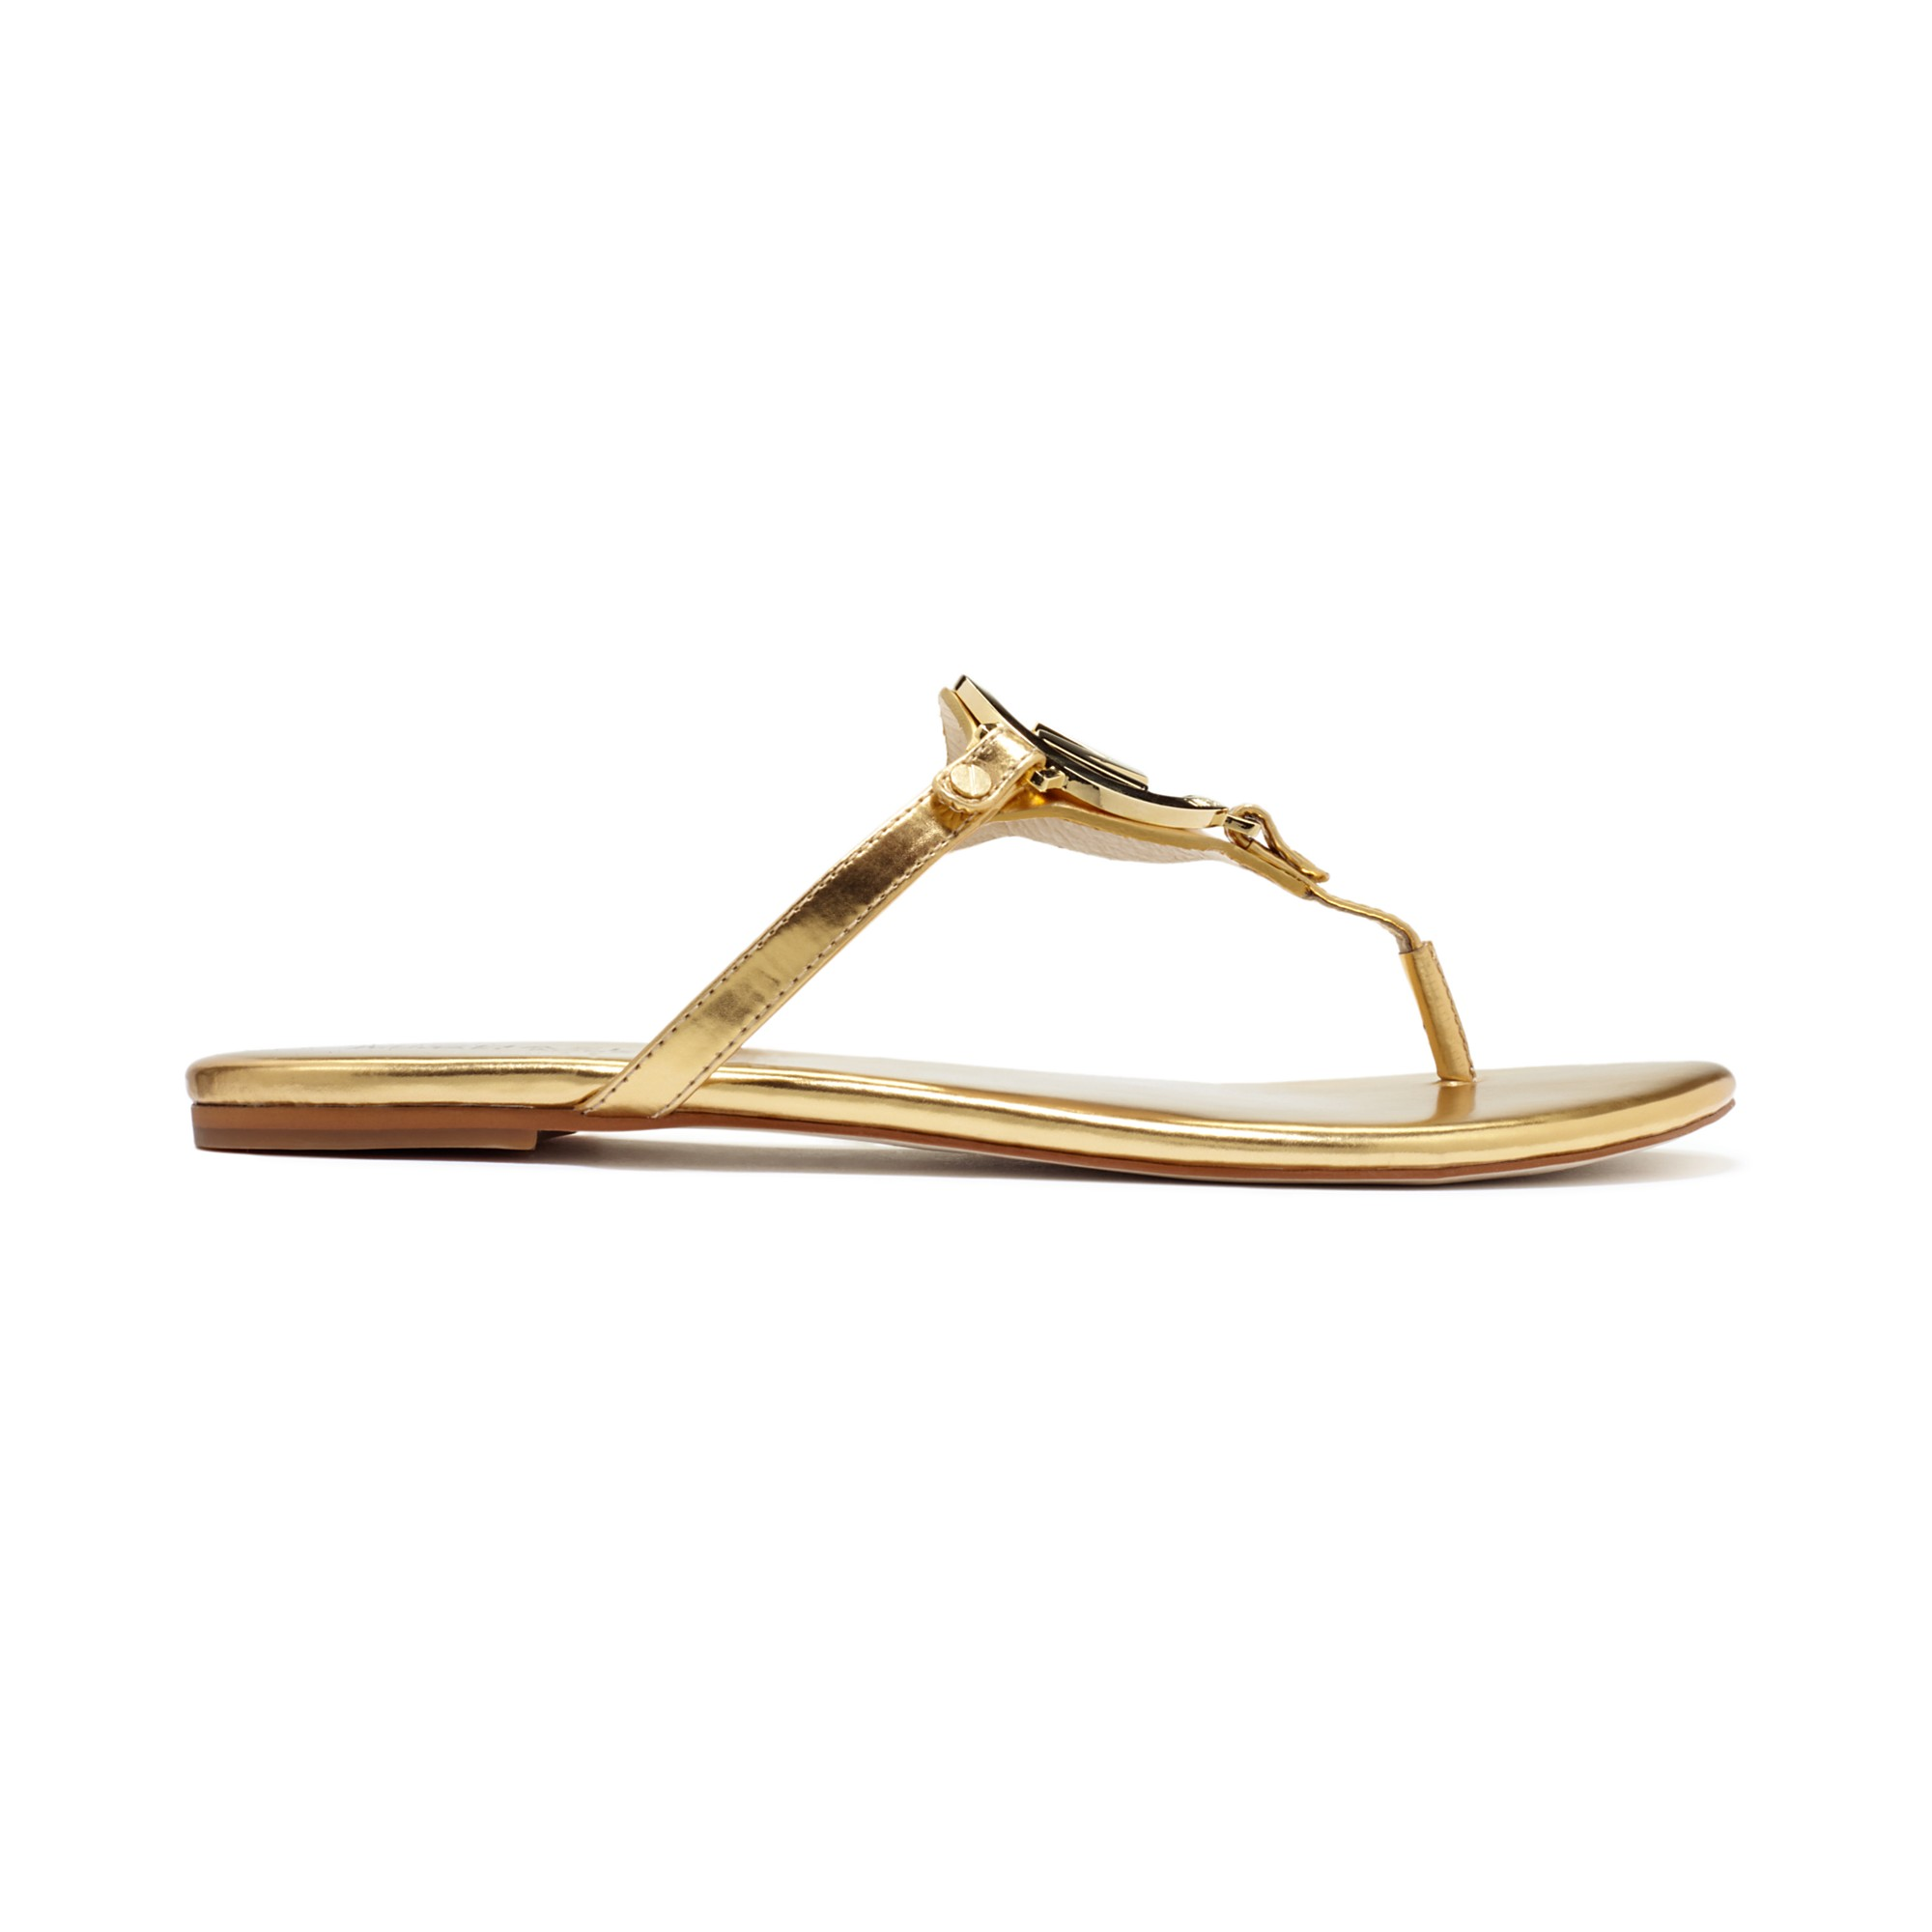 1f7bc1aa2d3 Lyst - Michael Kors Melodie Flat Thong Sandals in Metallic